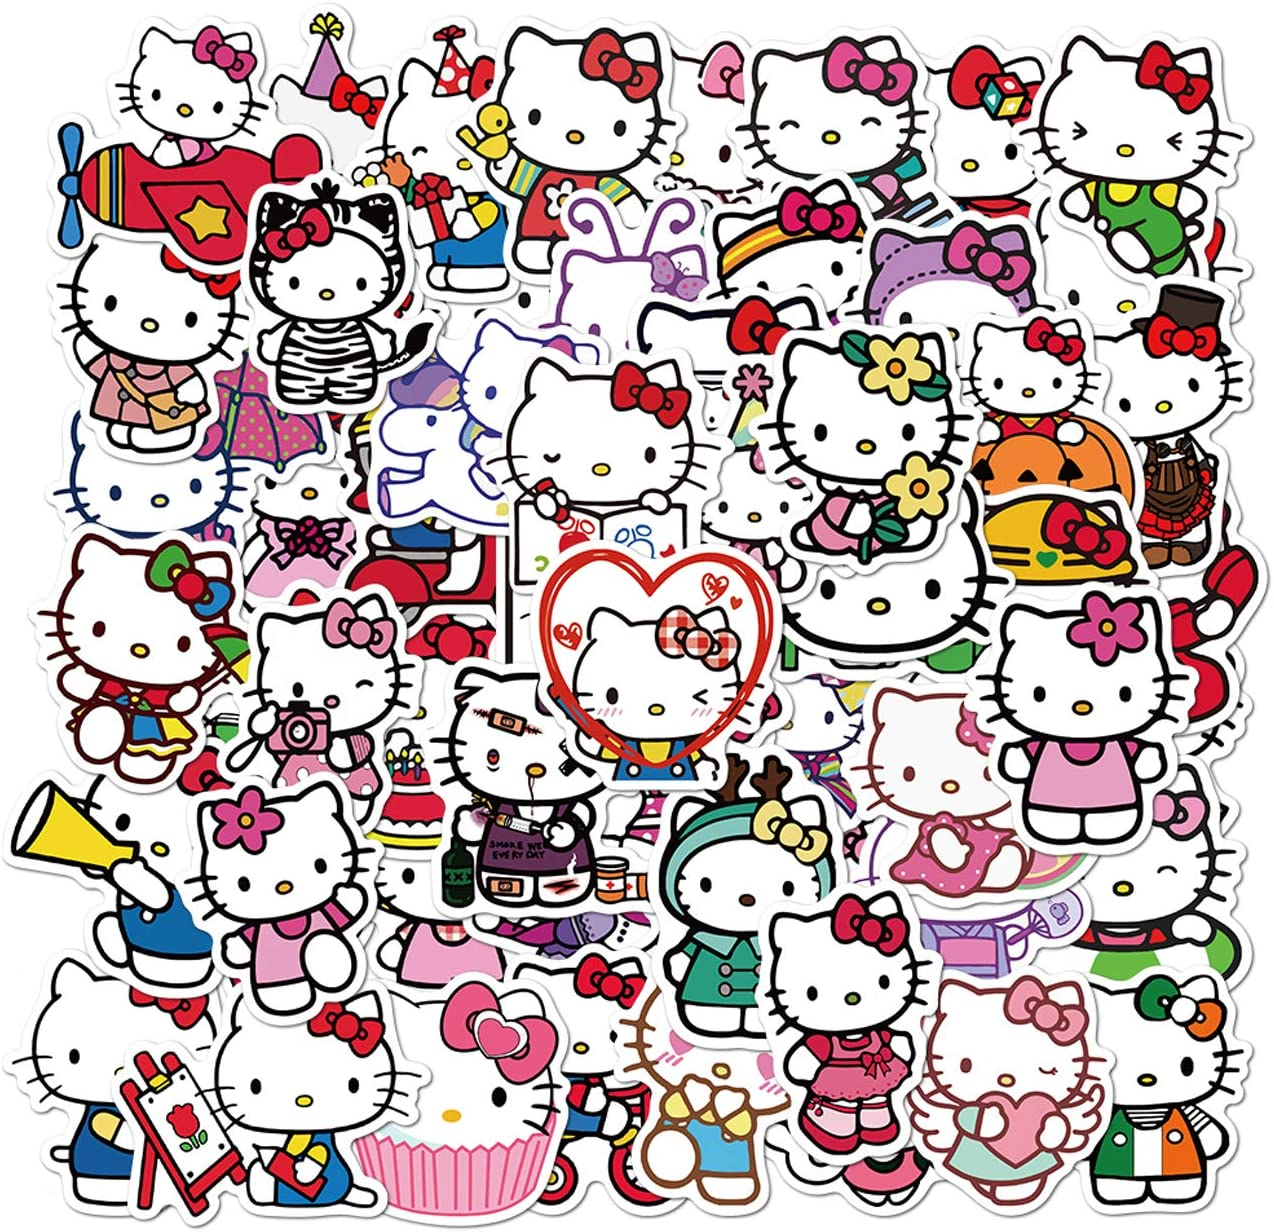 JIANGER Hello Kitty Stickers 100PCS Japanese Kawaii Stickers Vinyl Waterproof Stickers for Kids Teens Adults Laptop Water Bottles Skateboard Guitar